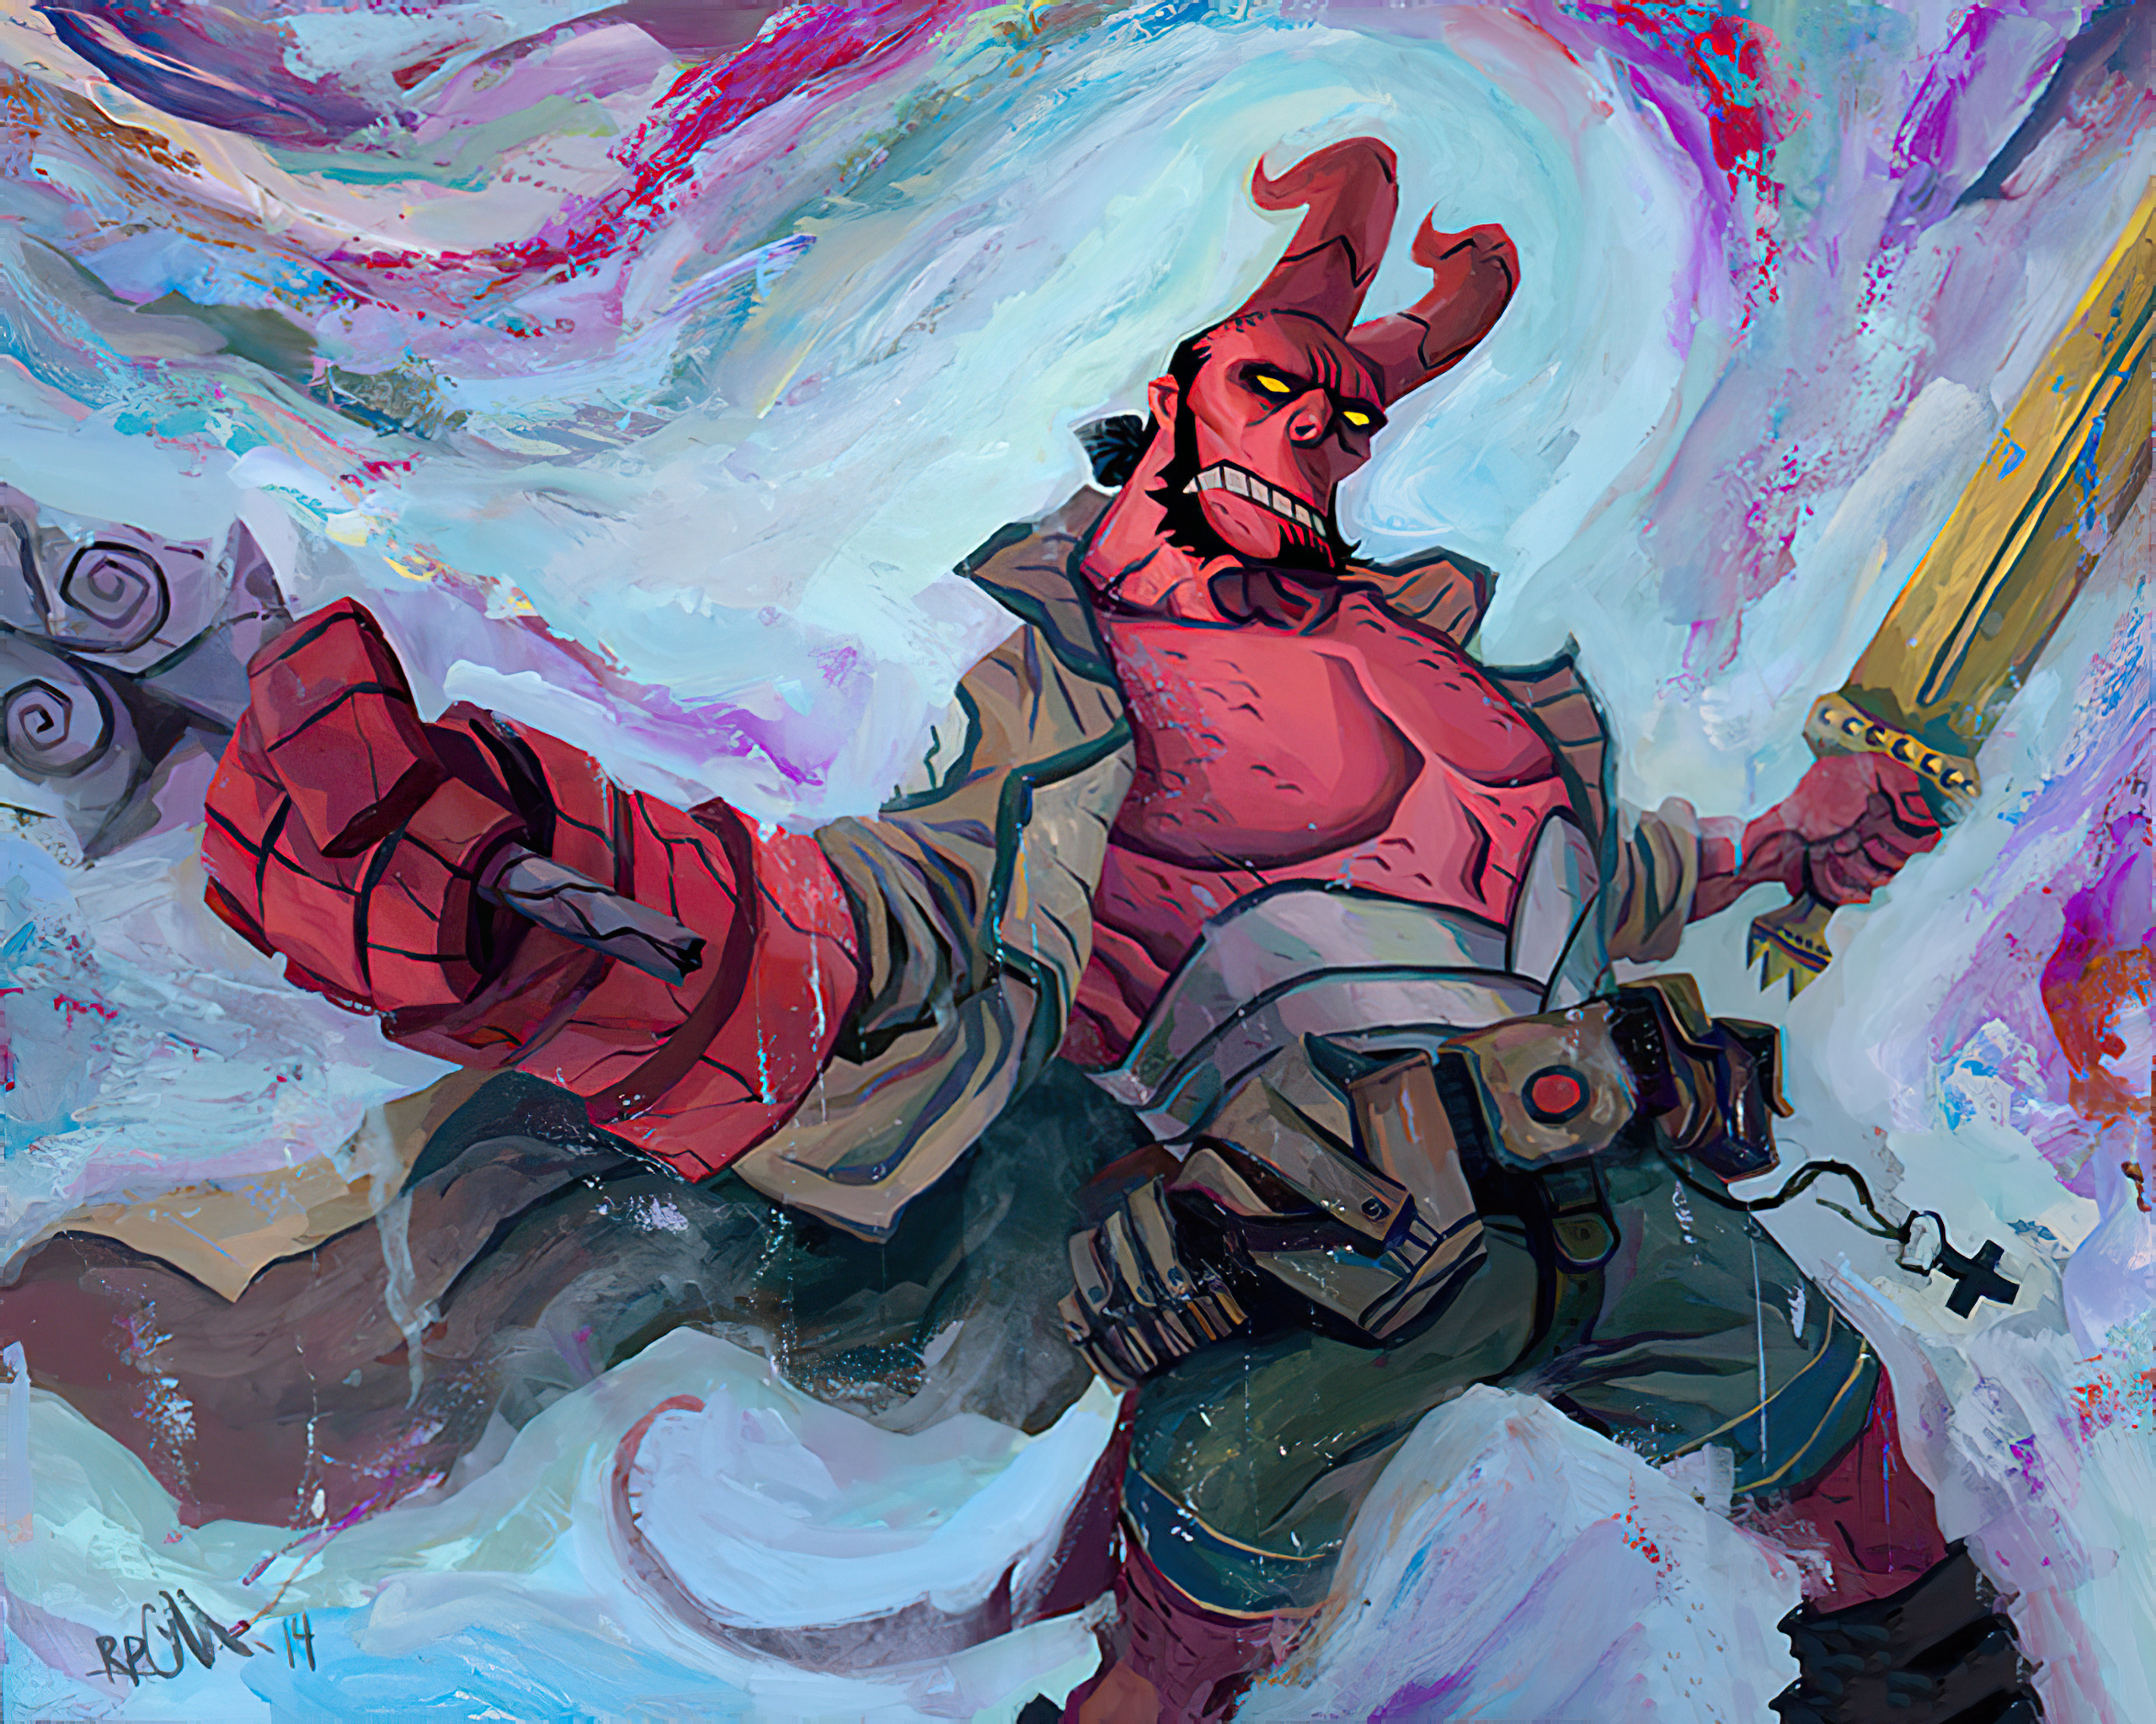 hellboy in paint